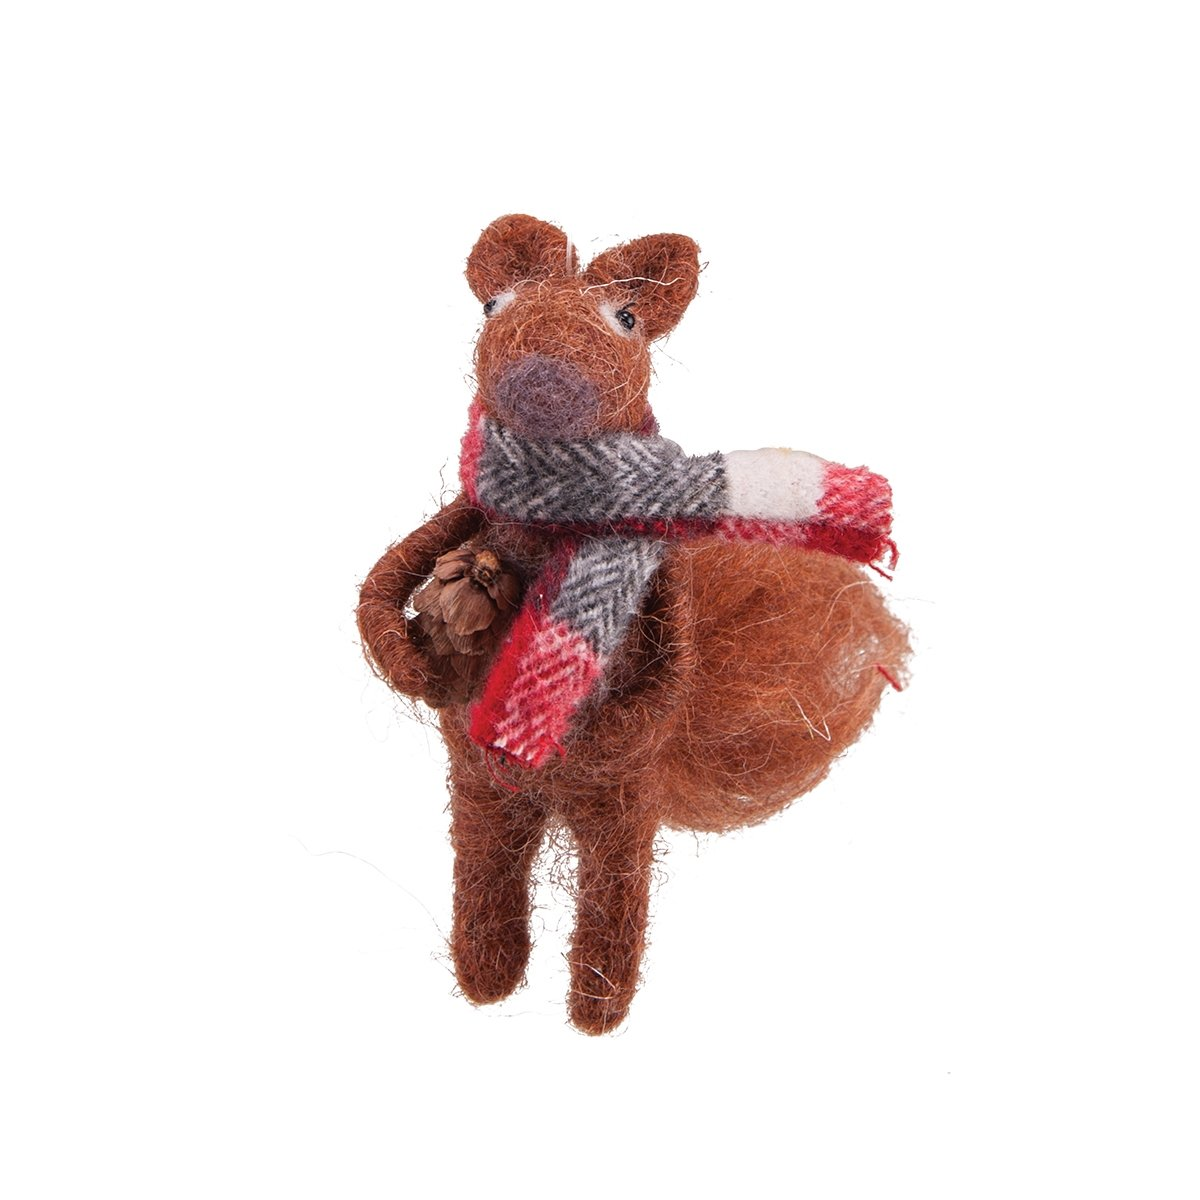 Ornament - Brown Squirrel with Scarf